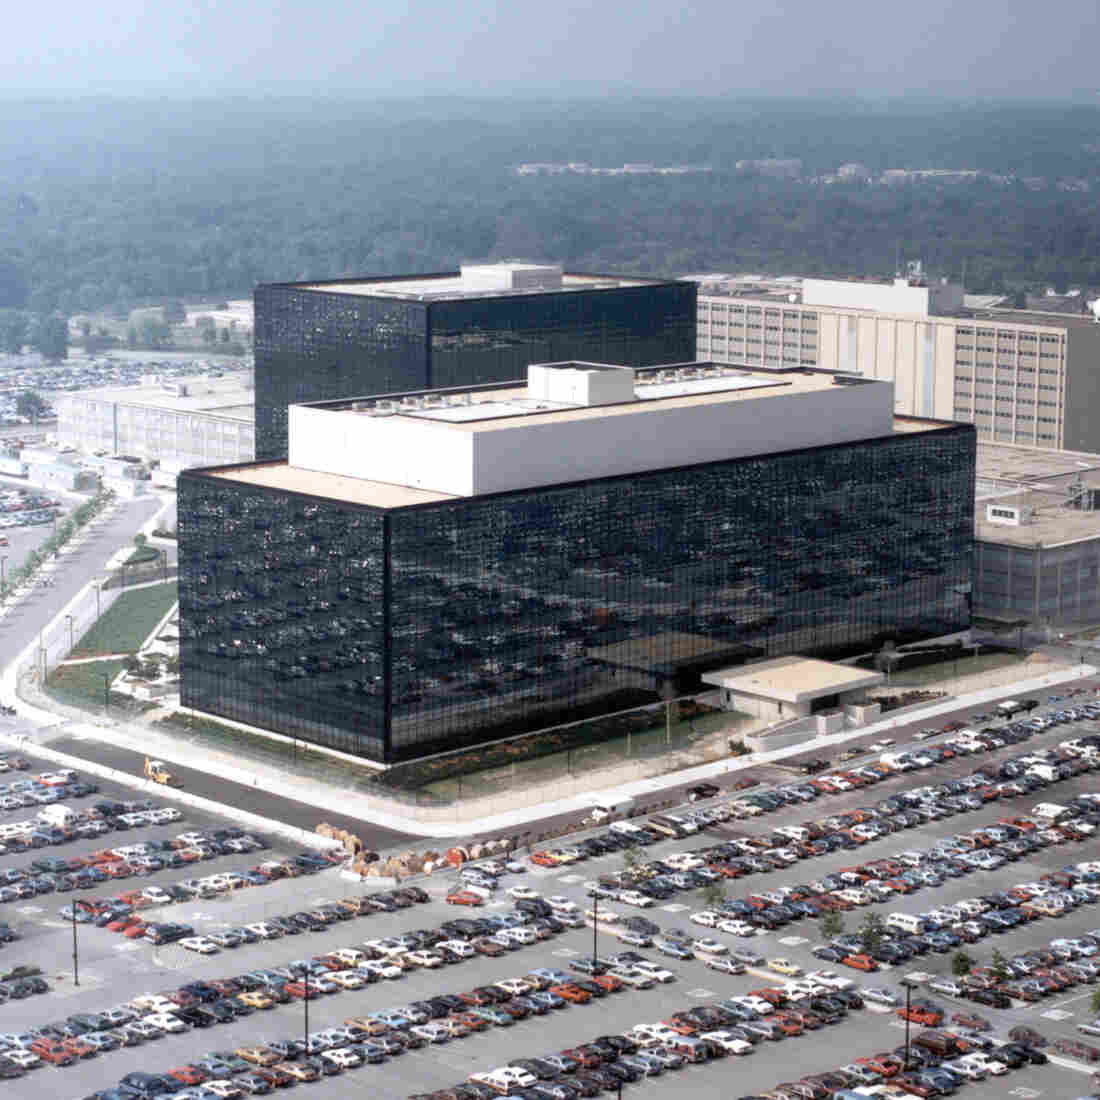 Over the last dozen years, whistleblowers at the National Security Agency have had a rough track record, facing FBI raids and lawsuits.